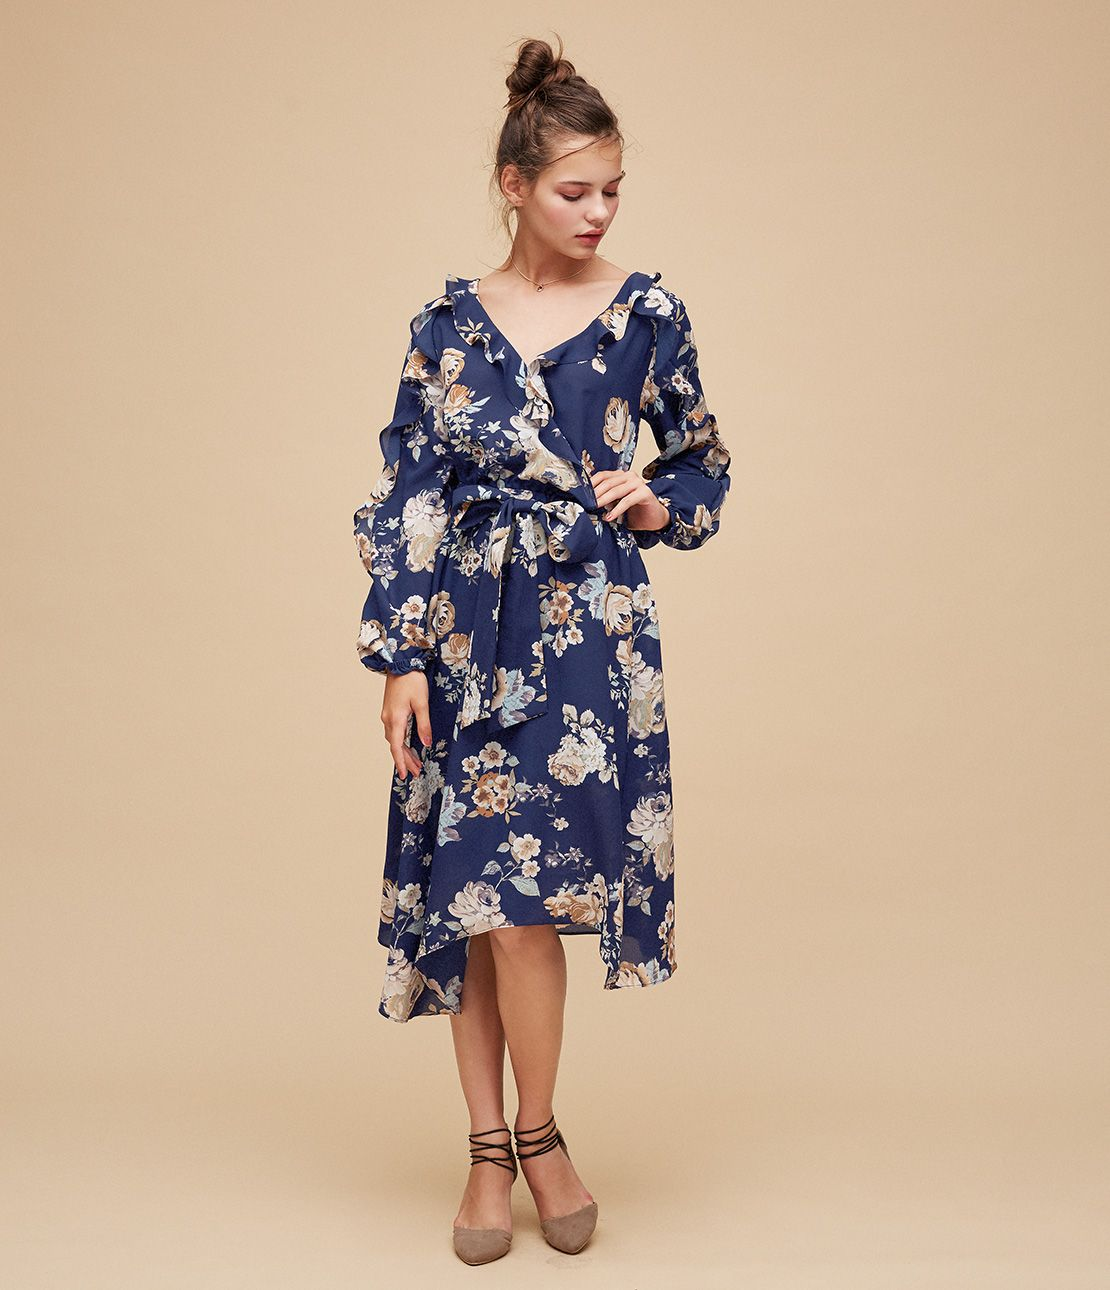 Ruffle Kashukuru Flower dress